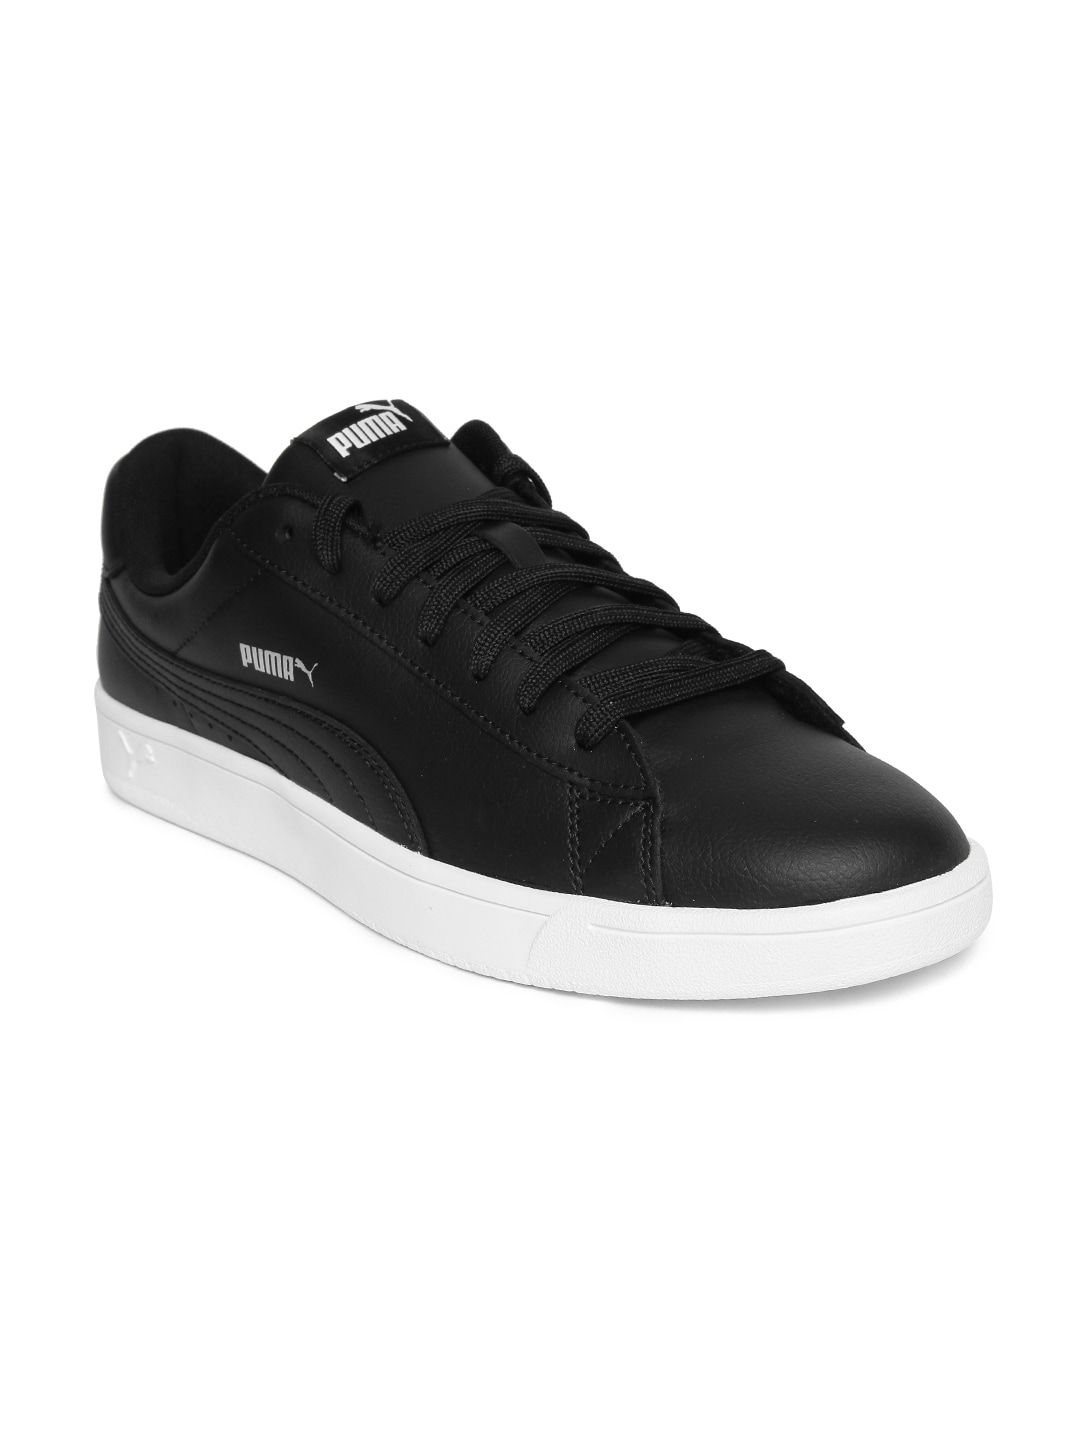 b36534879 Puma Black Shoes - Buy Puma Black Shoes Online in India